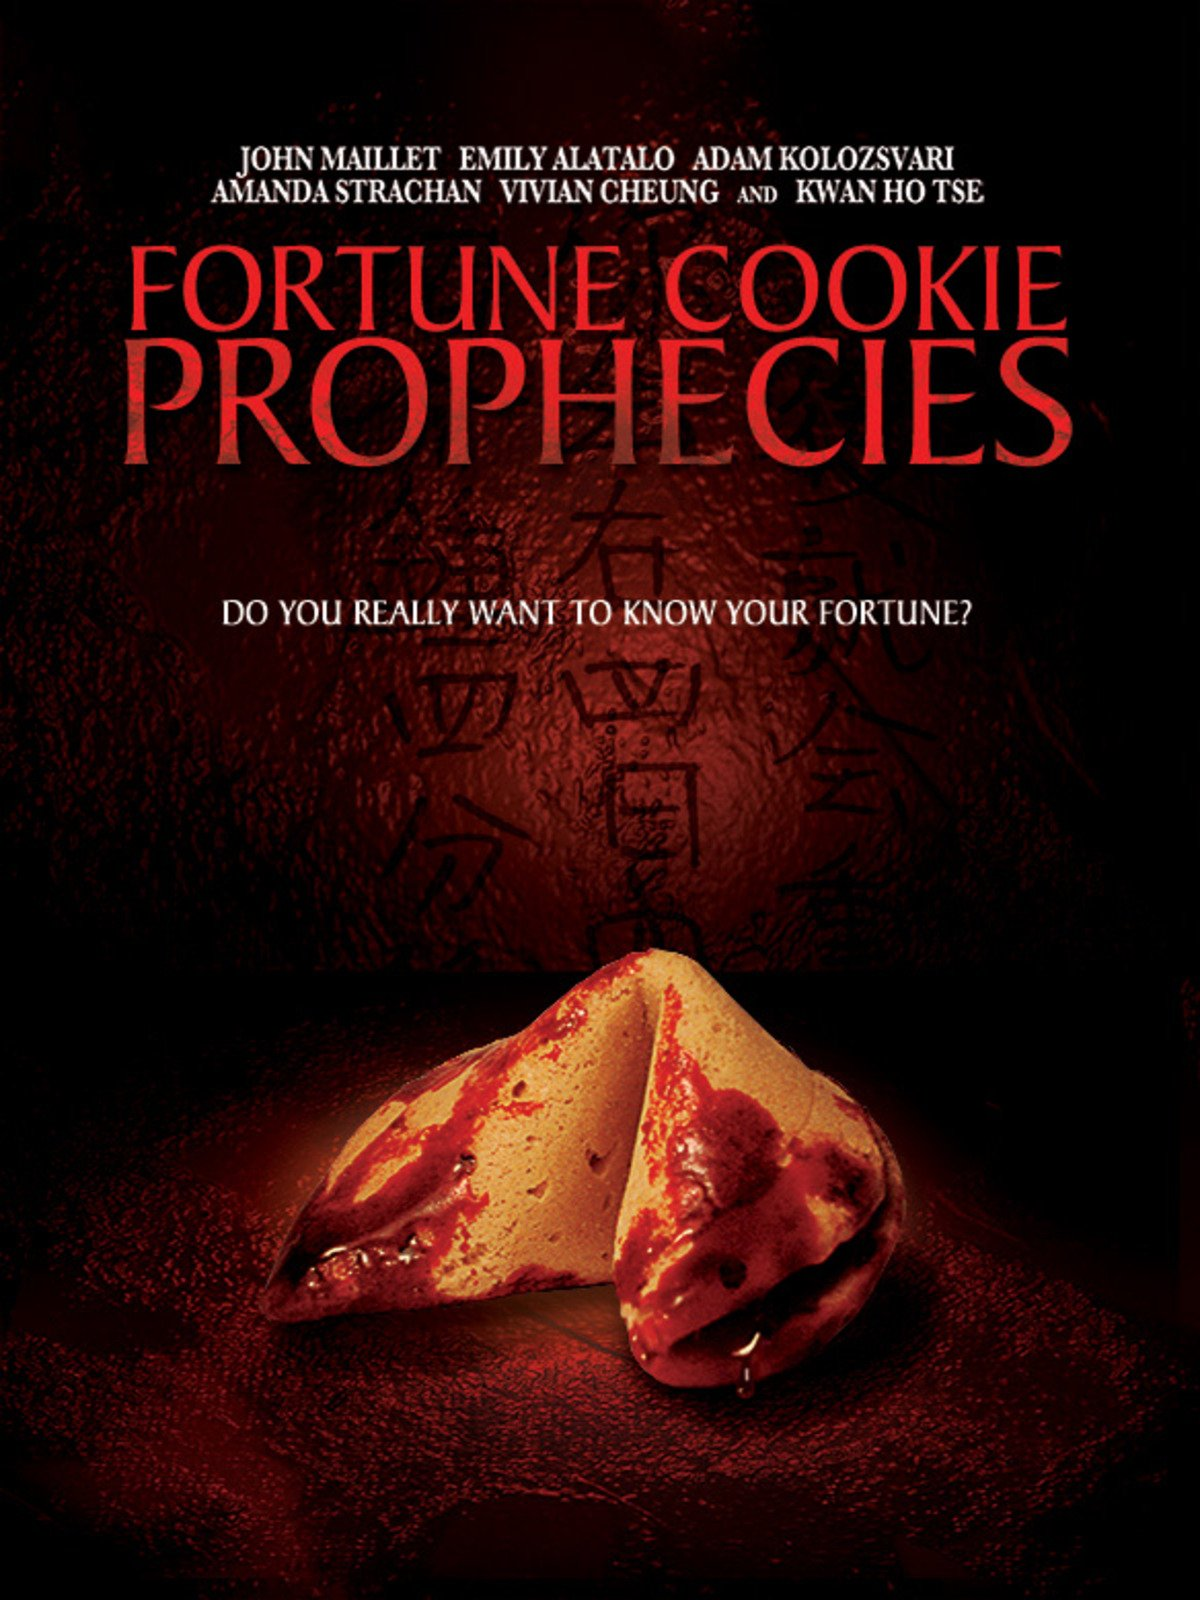 Fortune Cookie Prophecies on Amazon Prime Video UK